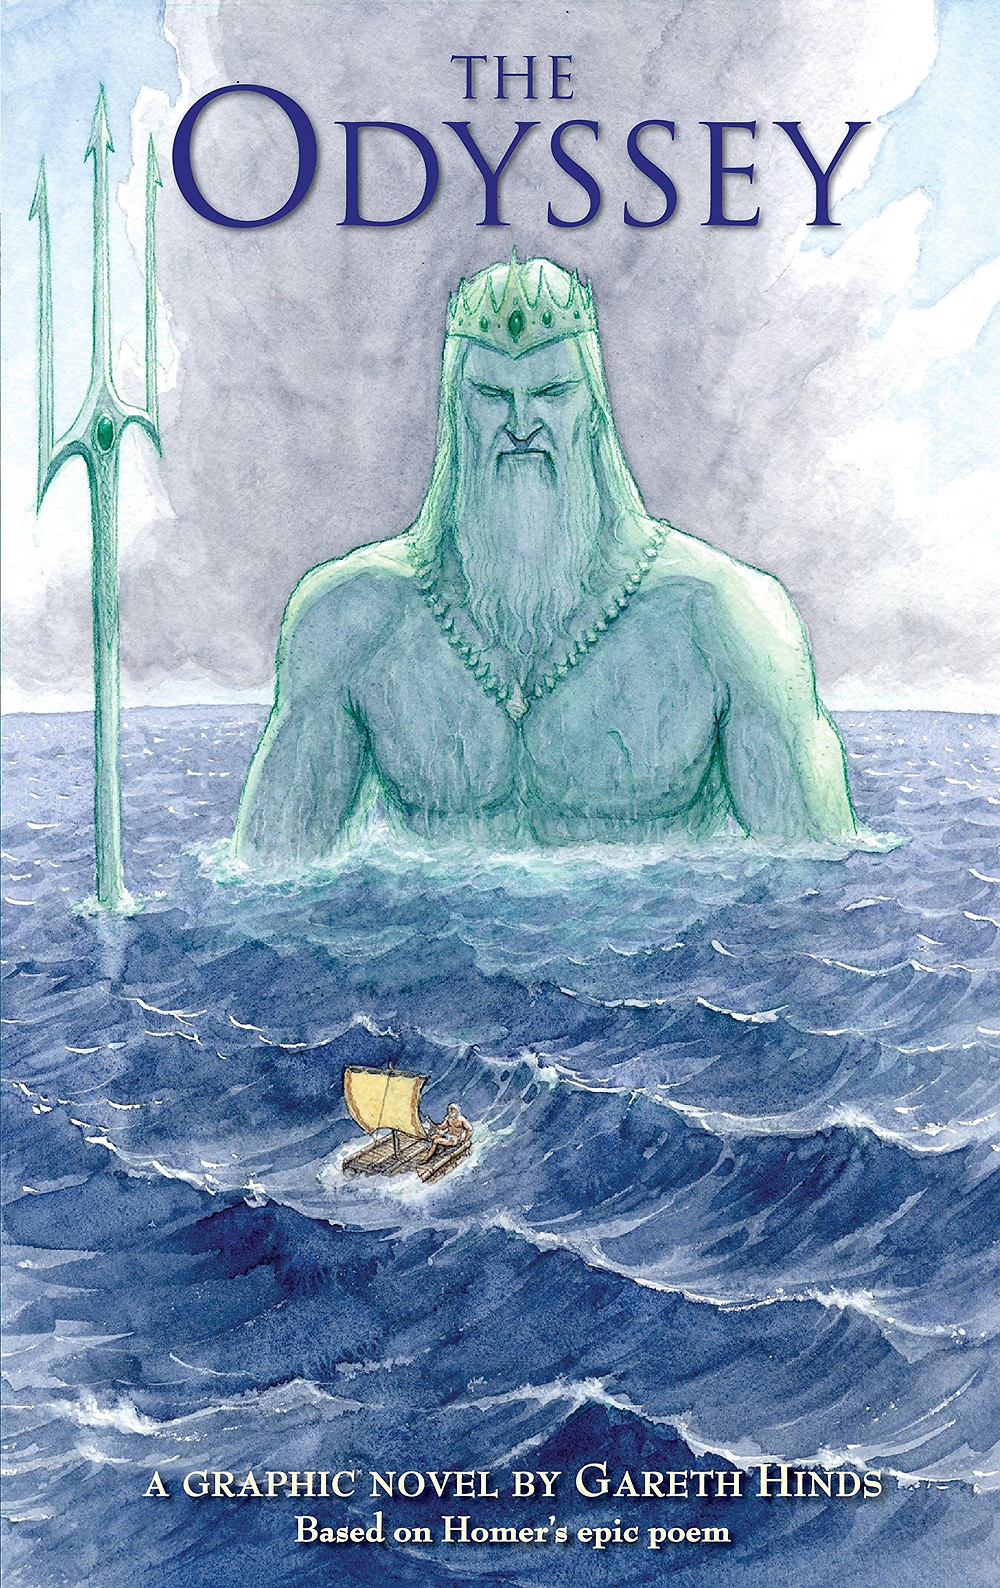 The cover of the graphic novel adaptation of The Odyssey featuring the wild ocean and a small raft floating on it. A large man rises out of the water. He wears a crown and holds a trident.